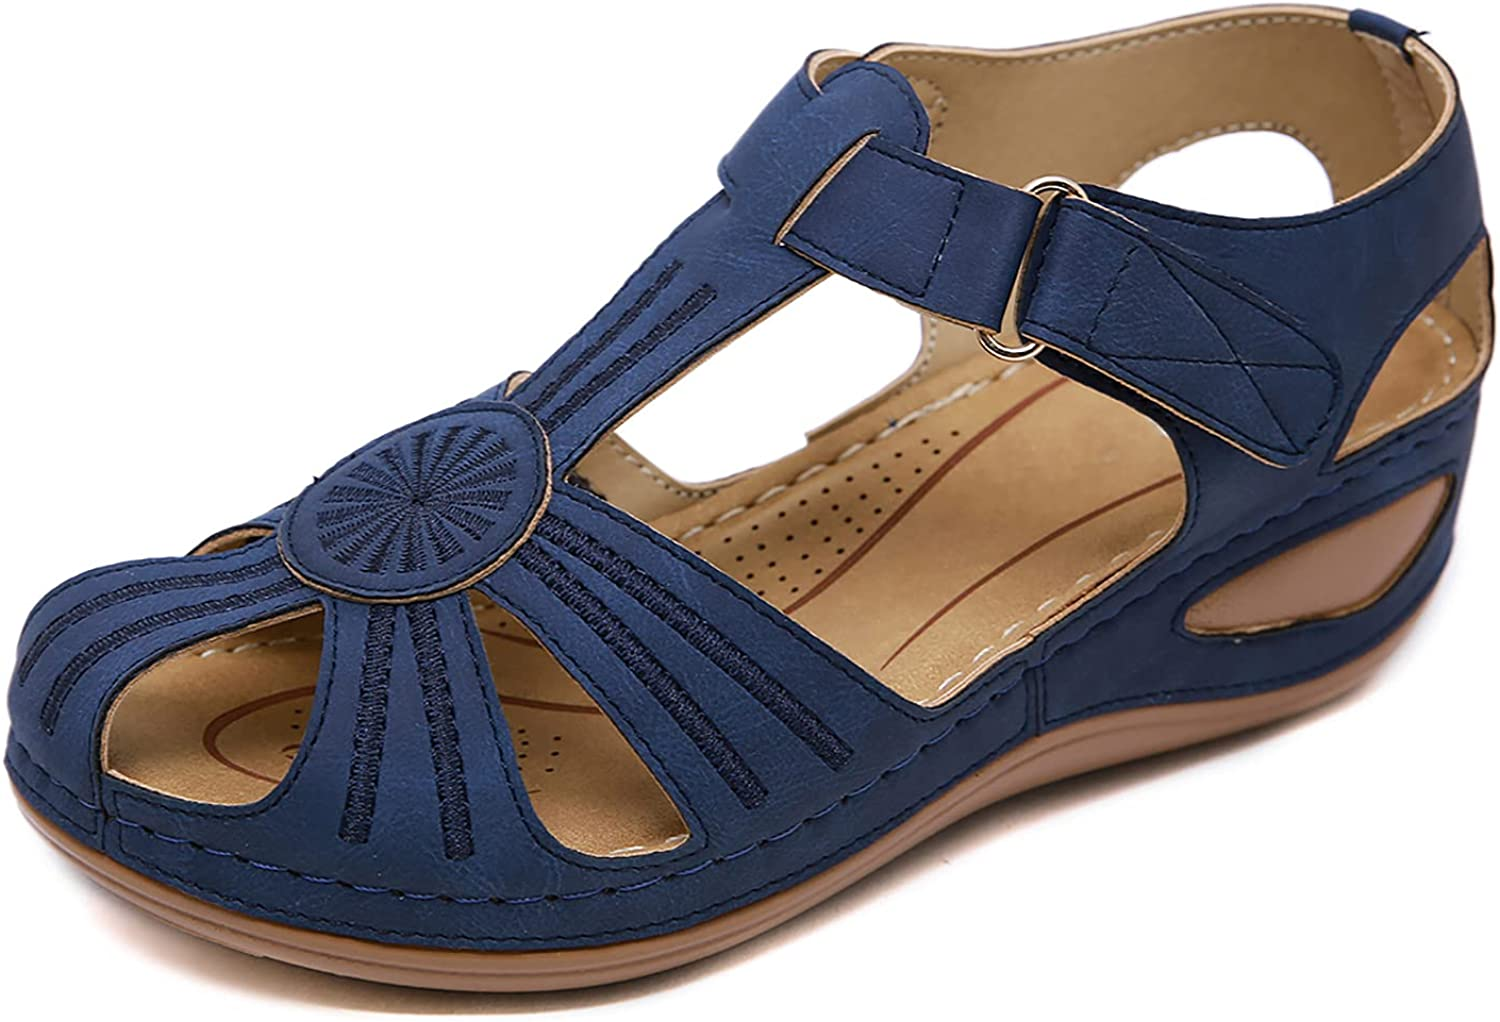 SHIBEVER Challenge the lowest price of Japan Women's Sandals Choice Hollow Closed Platform Wedge Toe Summer